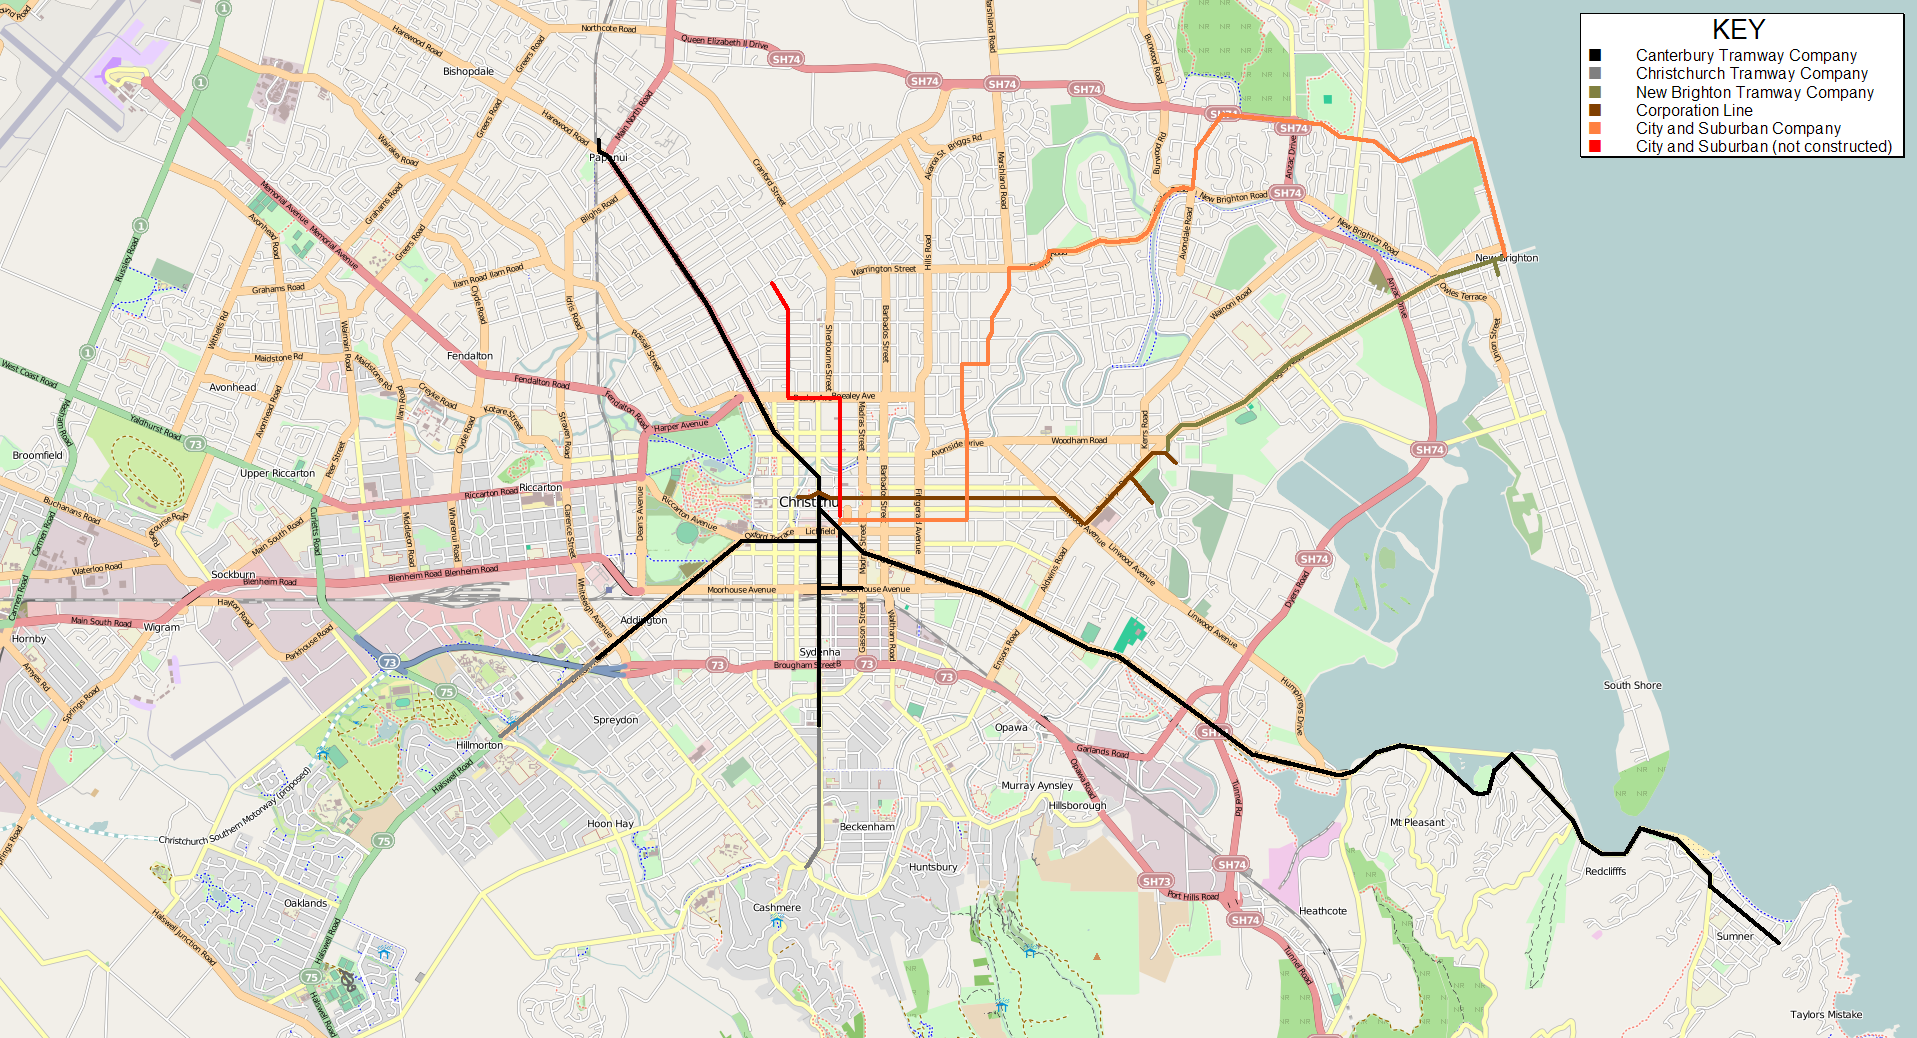 map of christchurch images reverse search Map Of Christchurch filename christchurch_private_tramway_route_map png map of christchurch